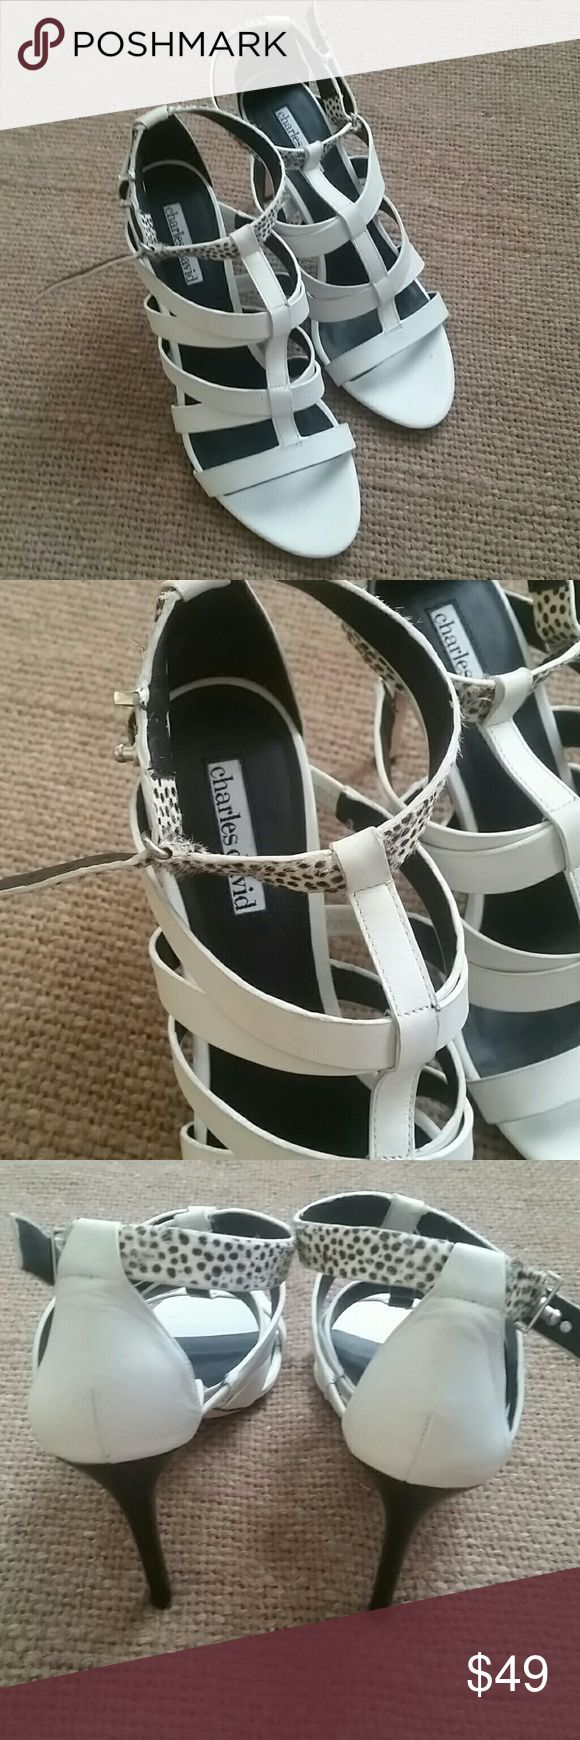 Charles  David  leather  strap sandals Pre owned  good condition, heels 3,8 in  without  issue,  sign  of use outsoles,real fur from calf on the strap color  off white Charles David Shoes Sandals